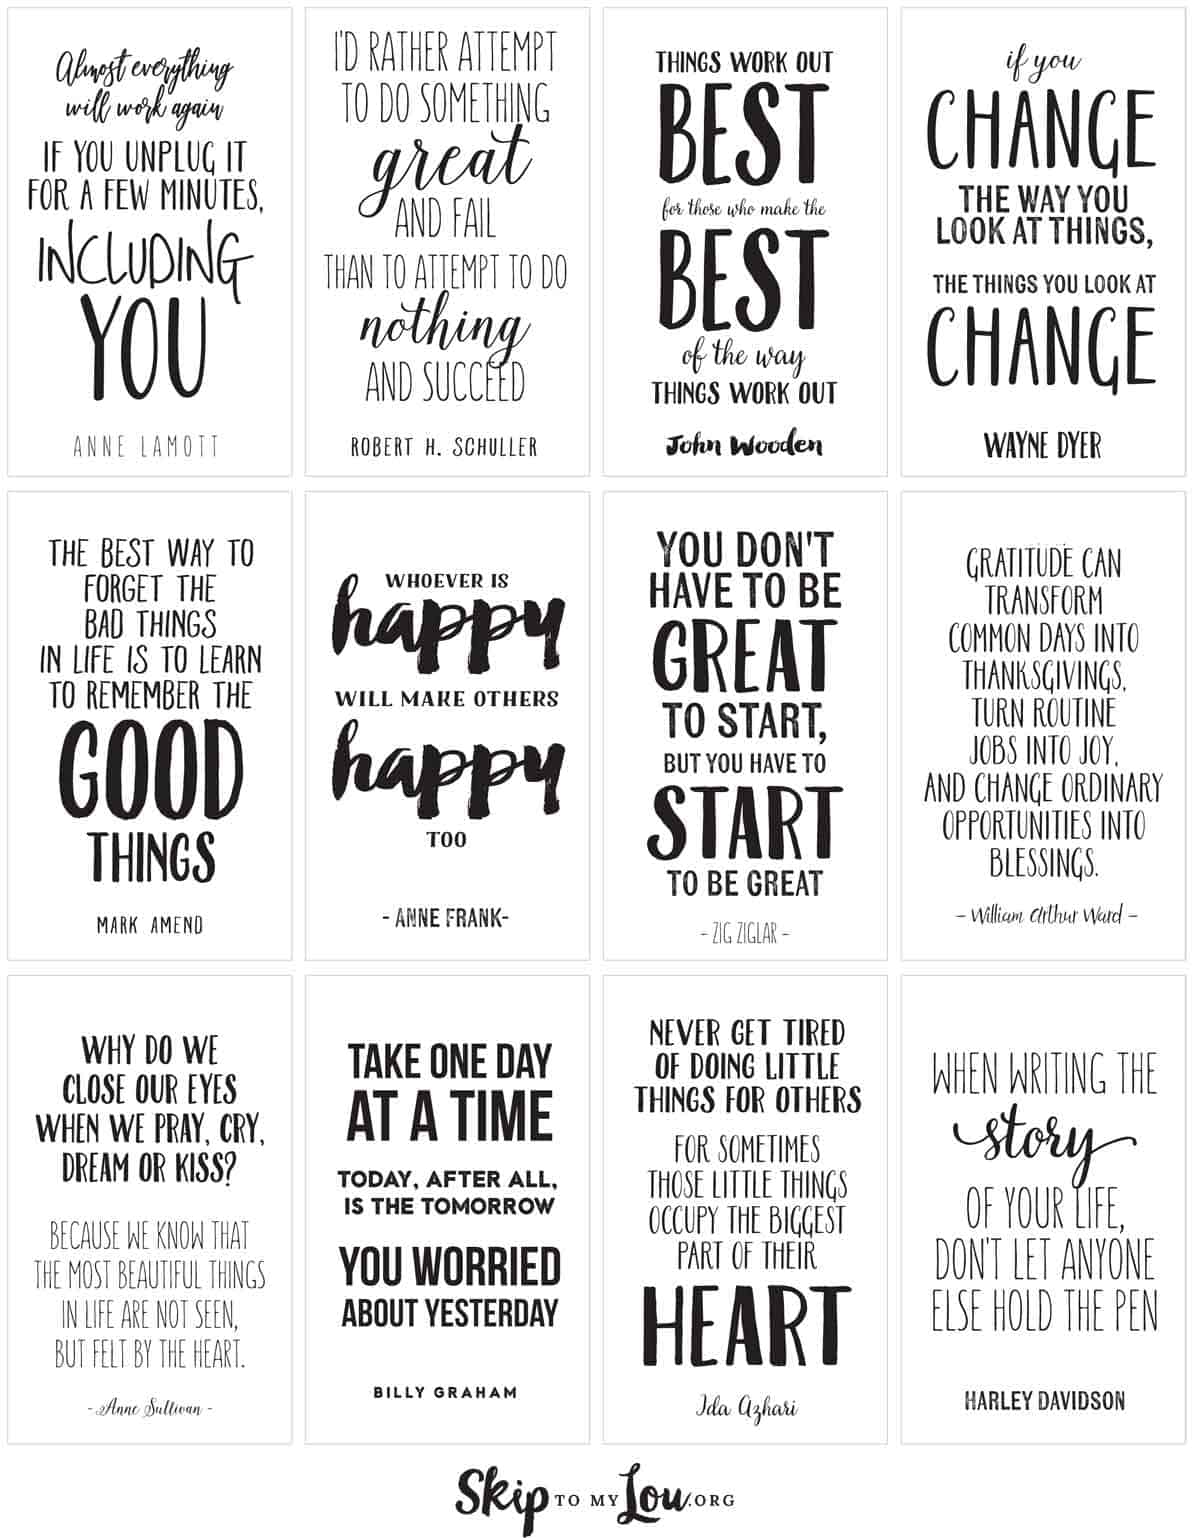 Amazing Life Quotes For Inspiration Free Printable Cards